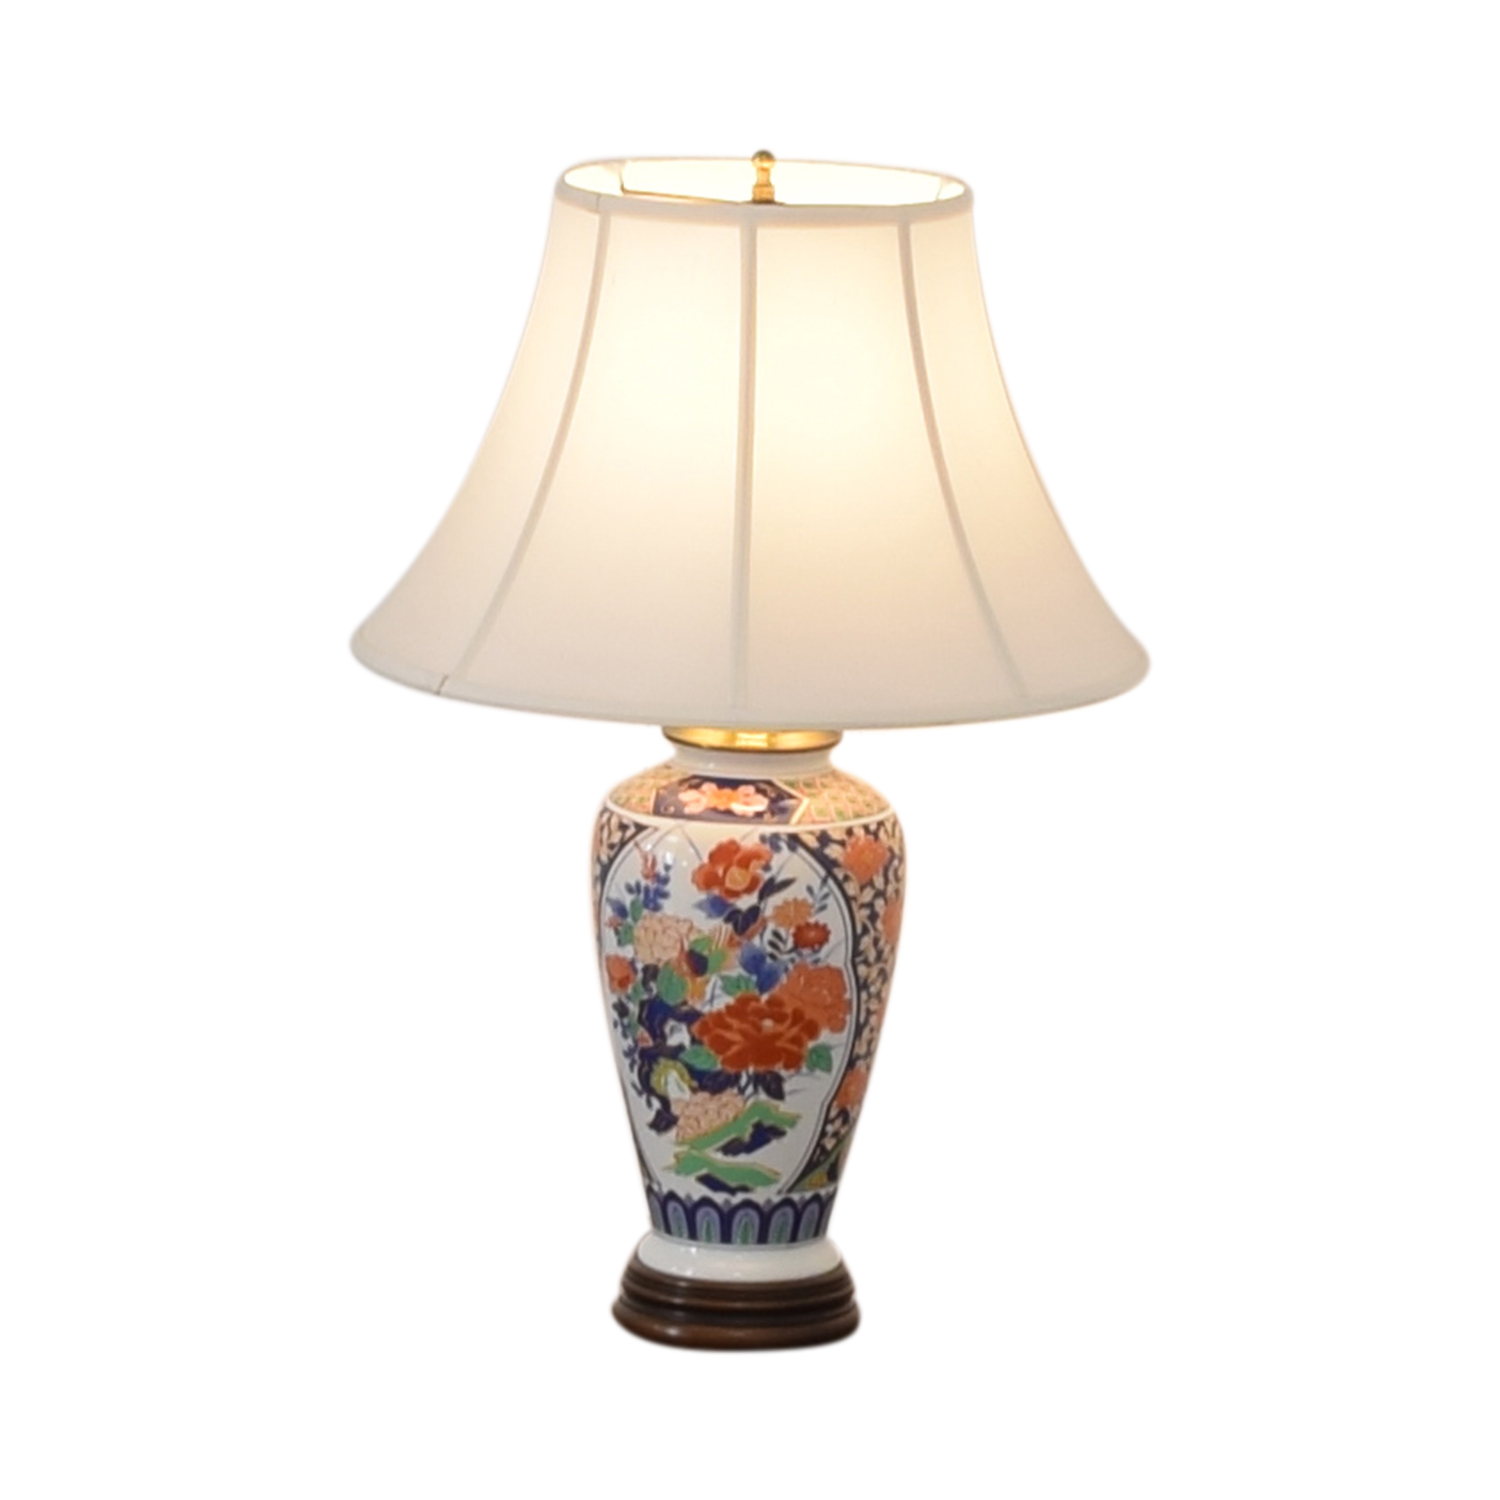 Japanese Imari Porcelain Table Lamp nyc